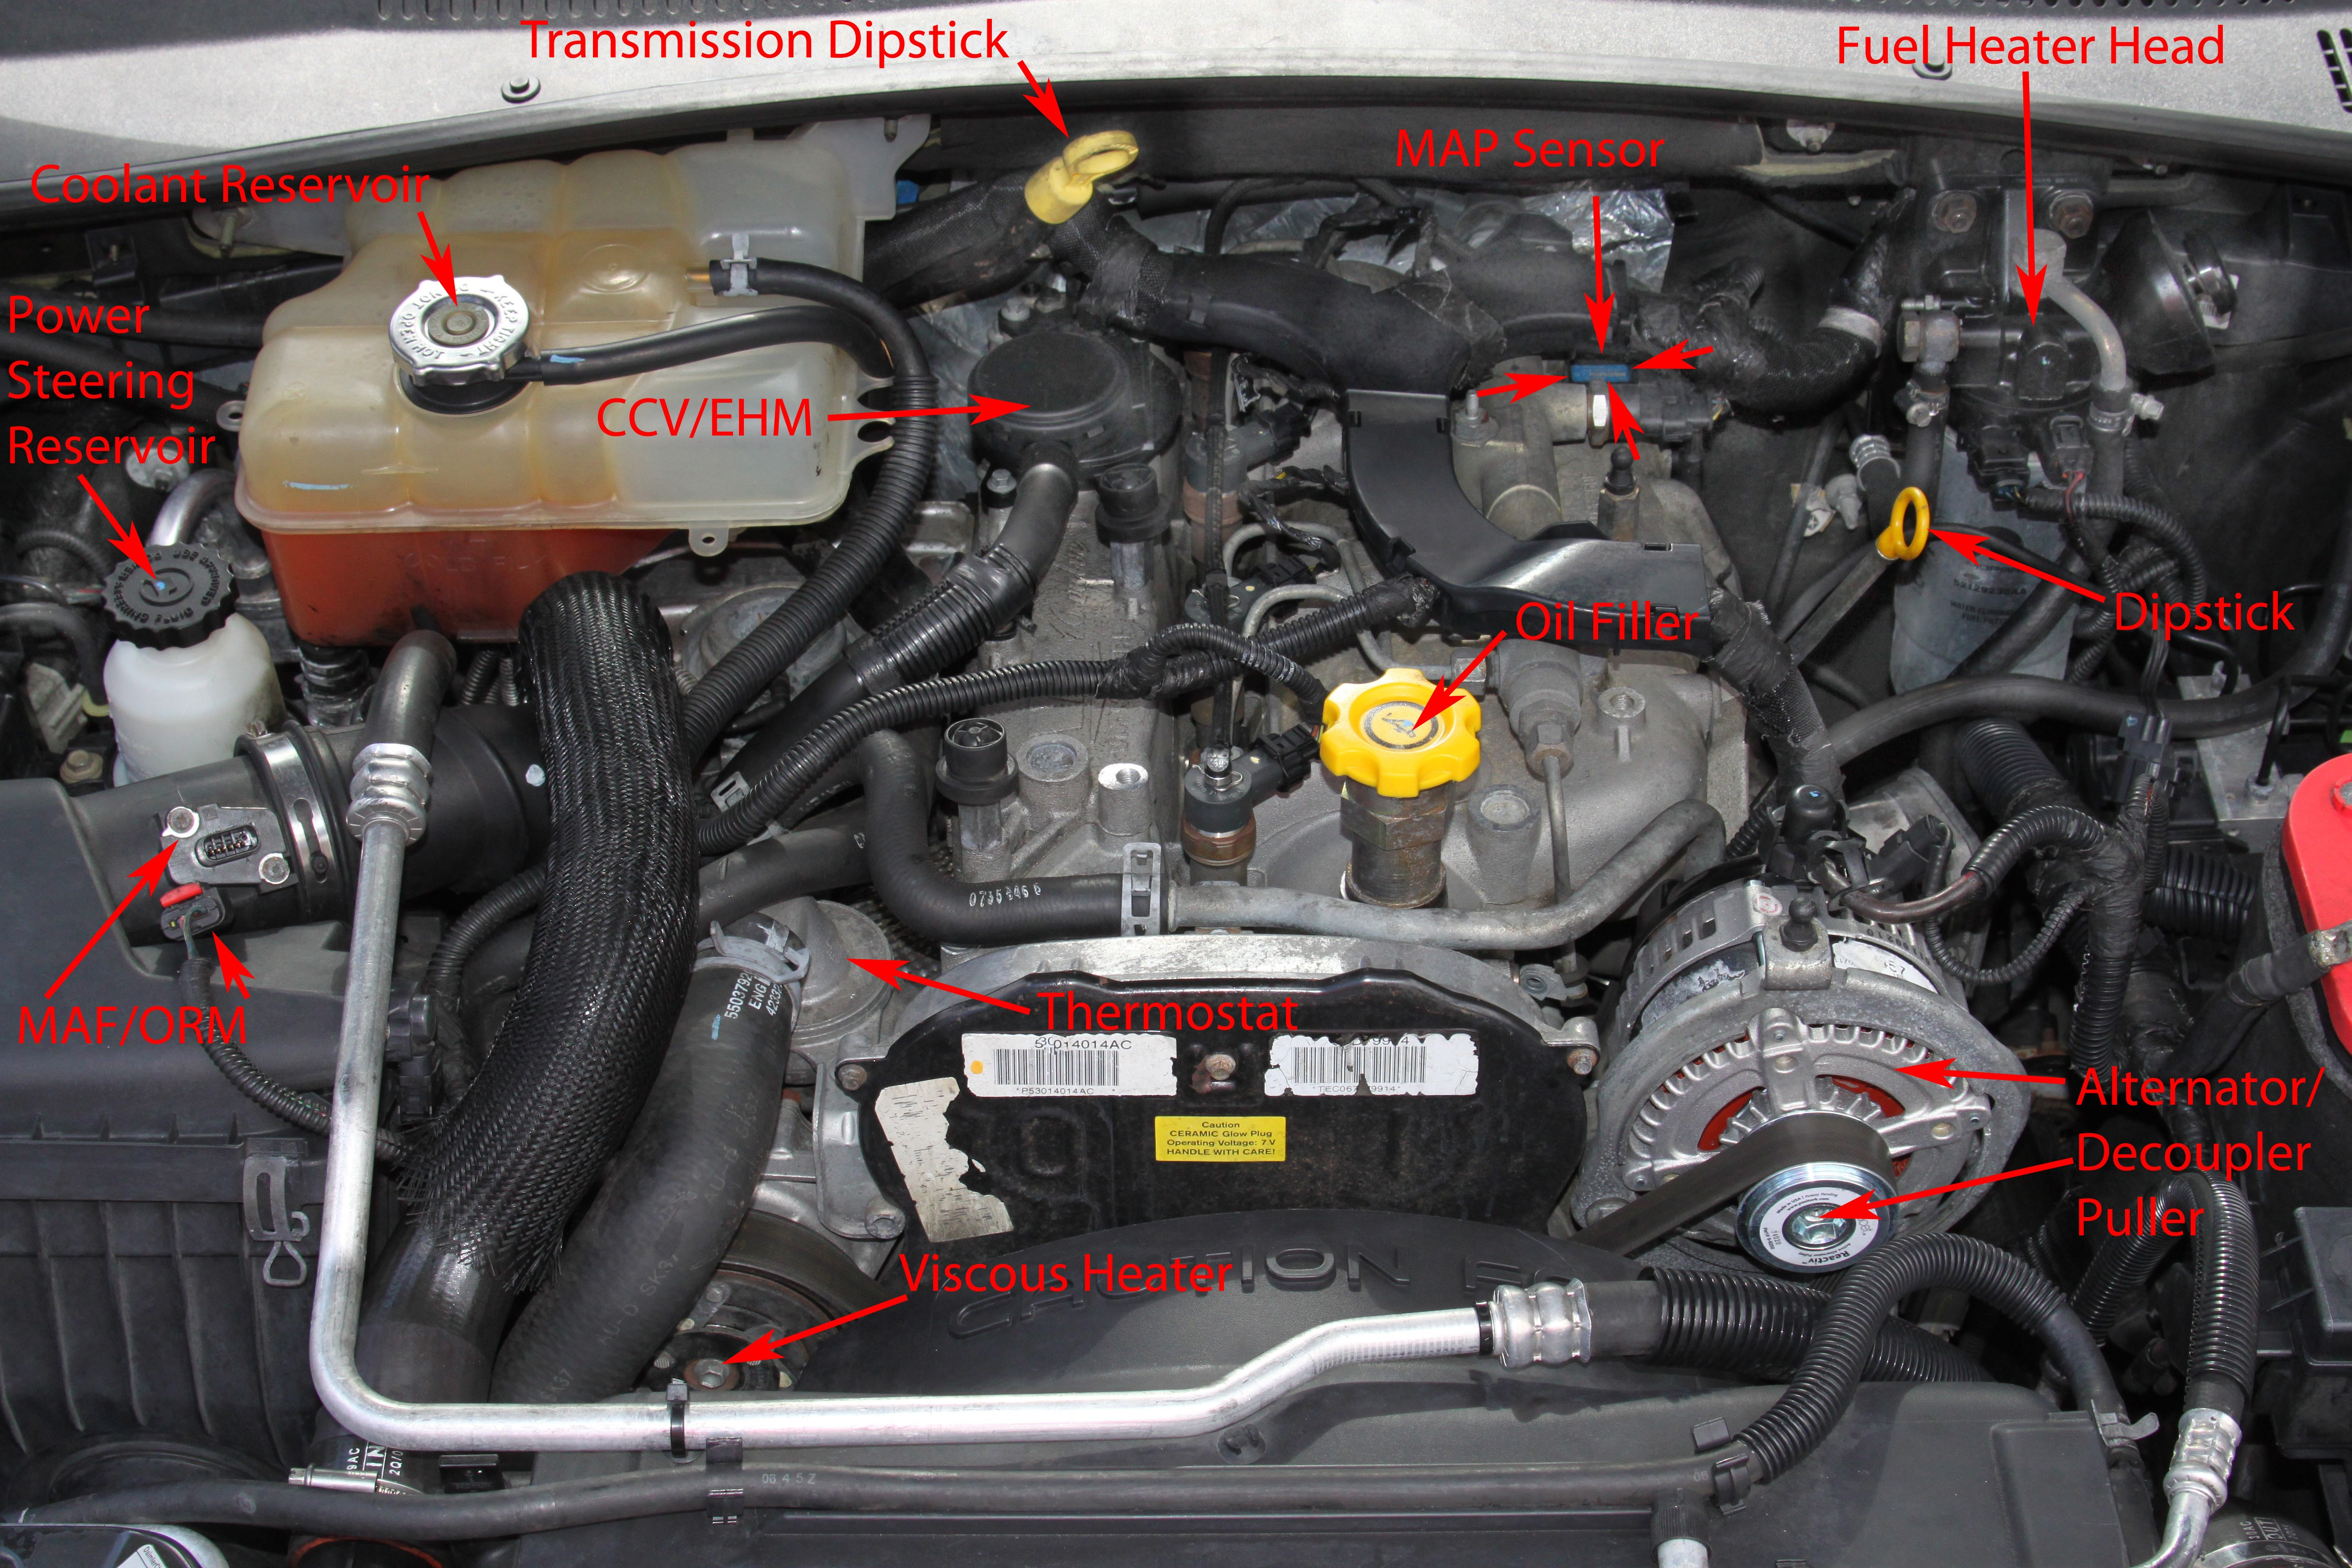 2003 Jeep Liberty Engine Diagram Lost Jeeps • View topic Sam S Crd Noob Guide Of 2003 Jeep Liberty Engine Diagram